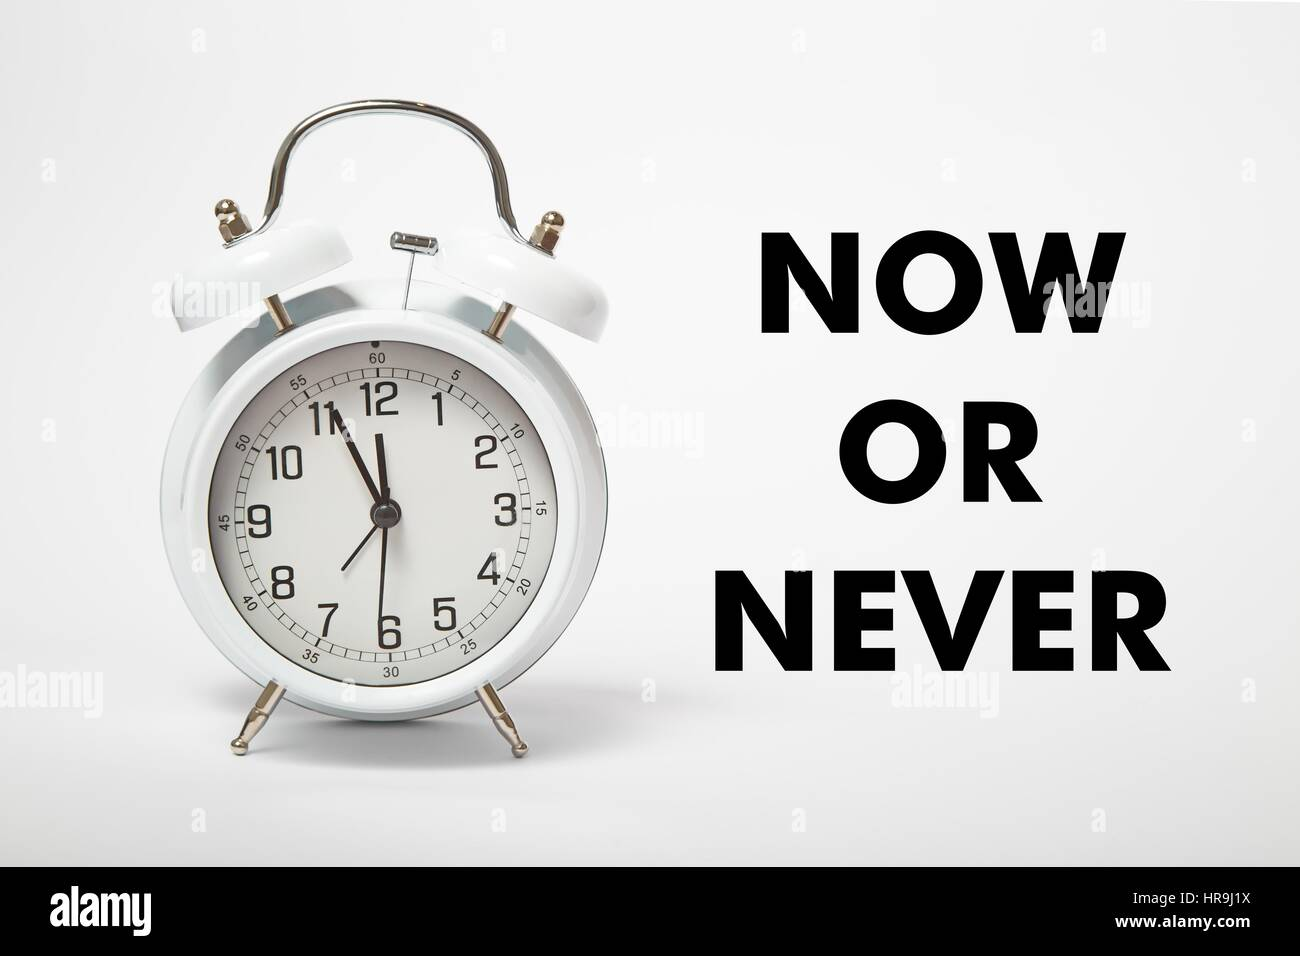 White old clock with text NOW OR NEVER - Stock Image